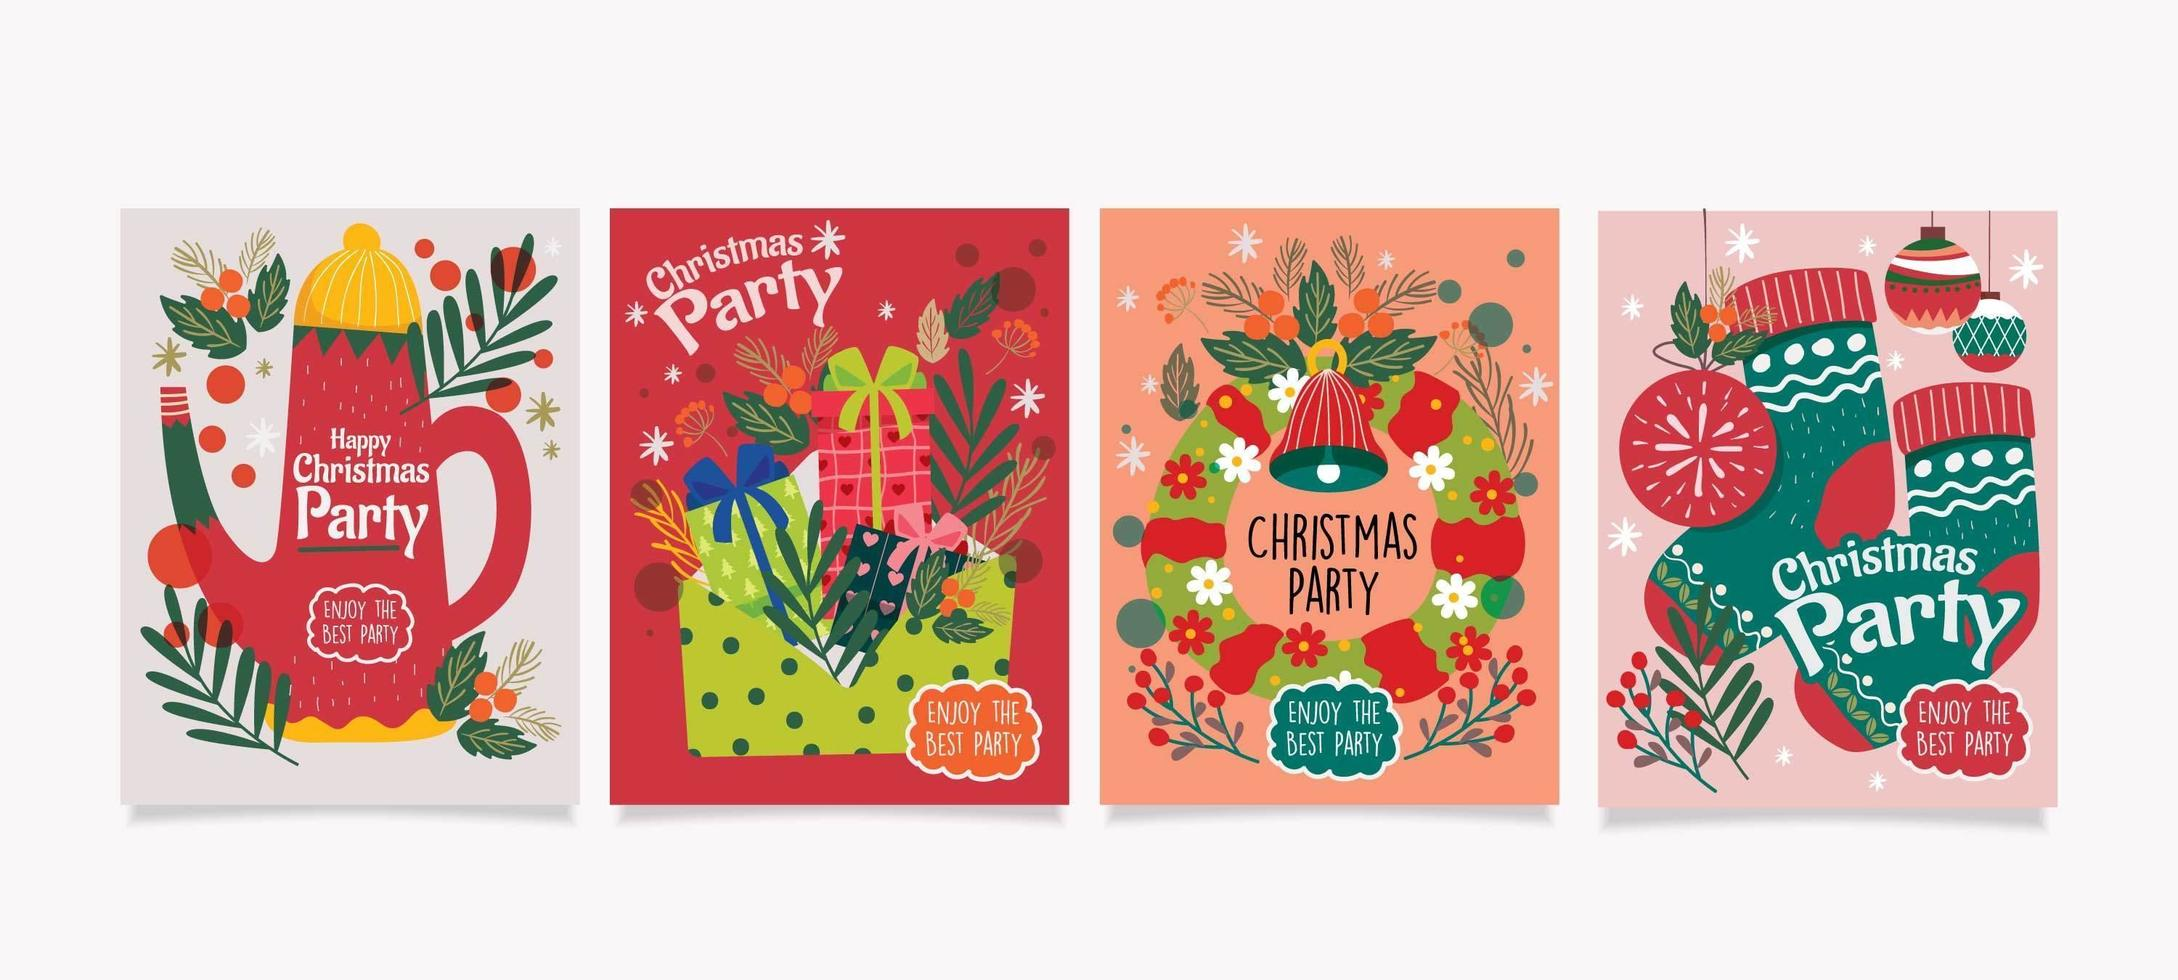 Christmas Card with Super Cute Style vector